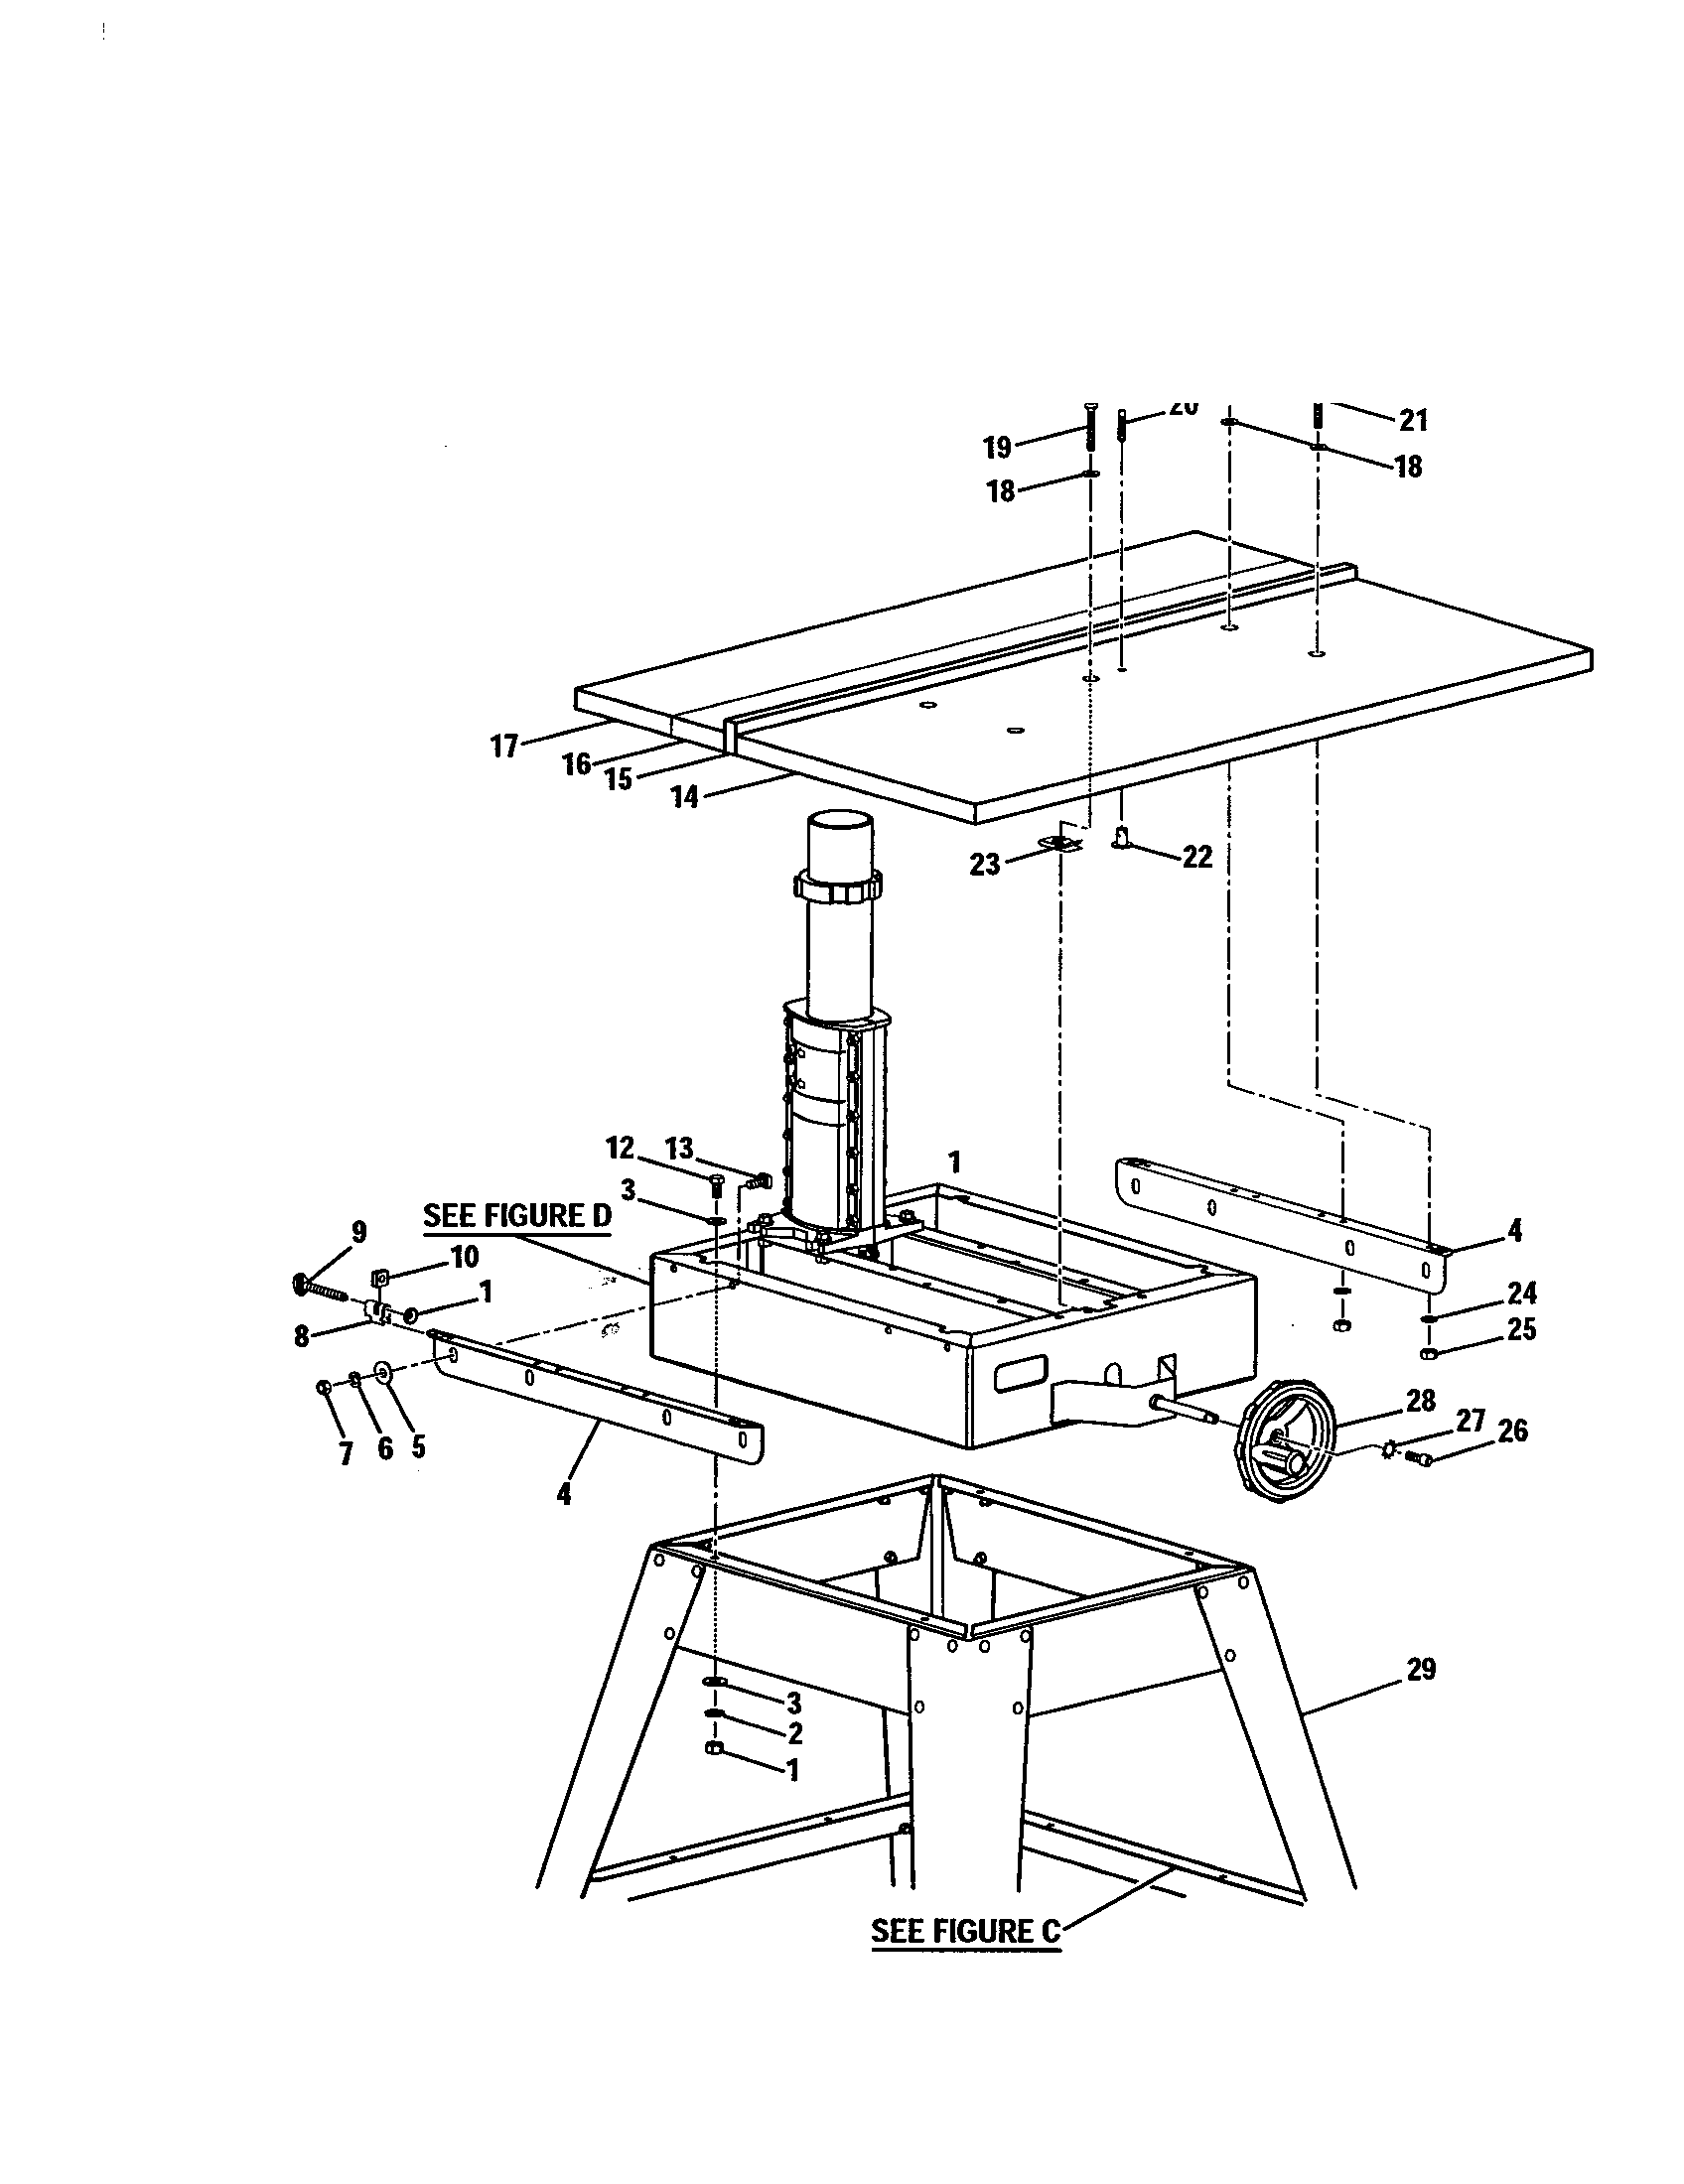 hight resolution of sear site information on radial arm saw